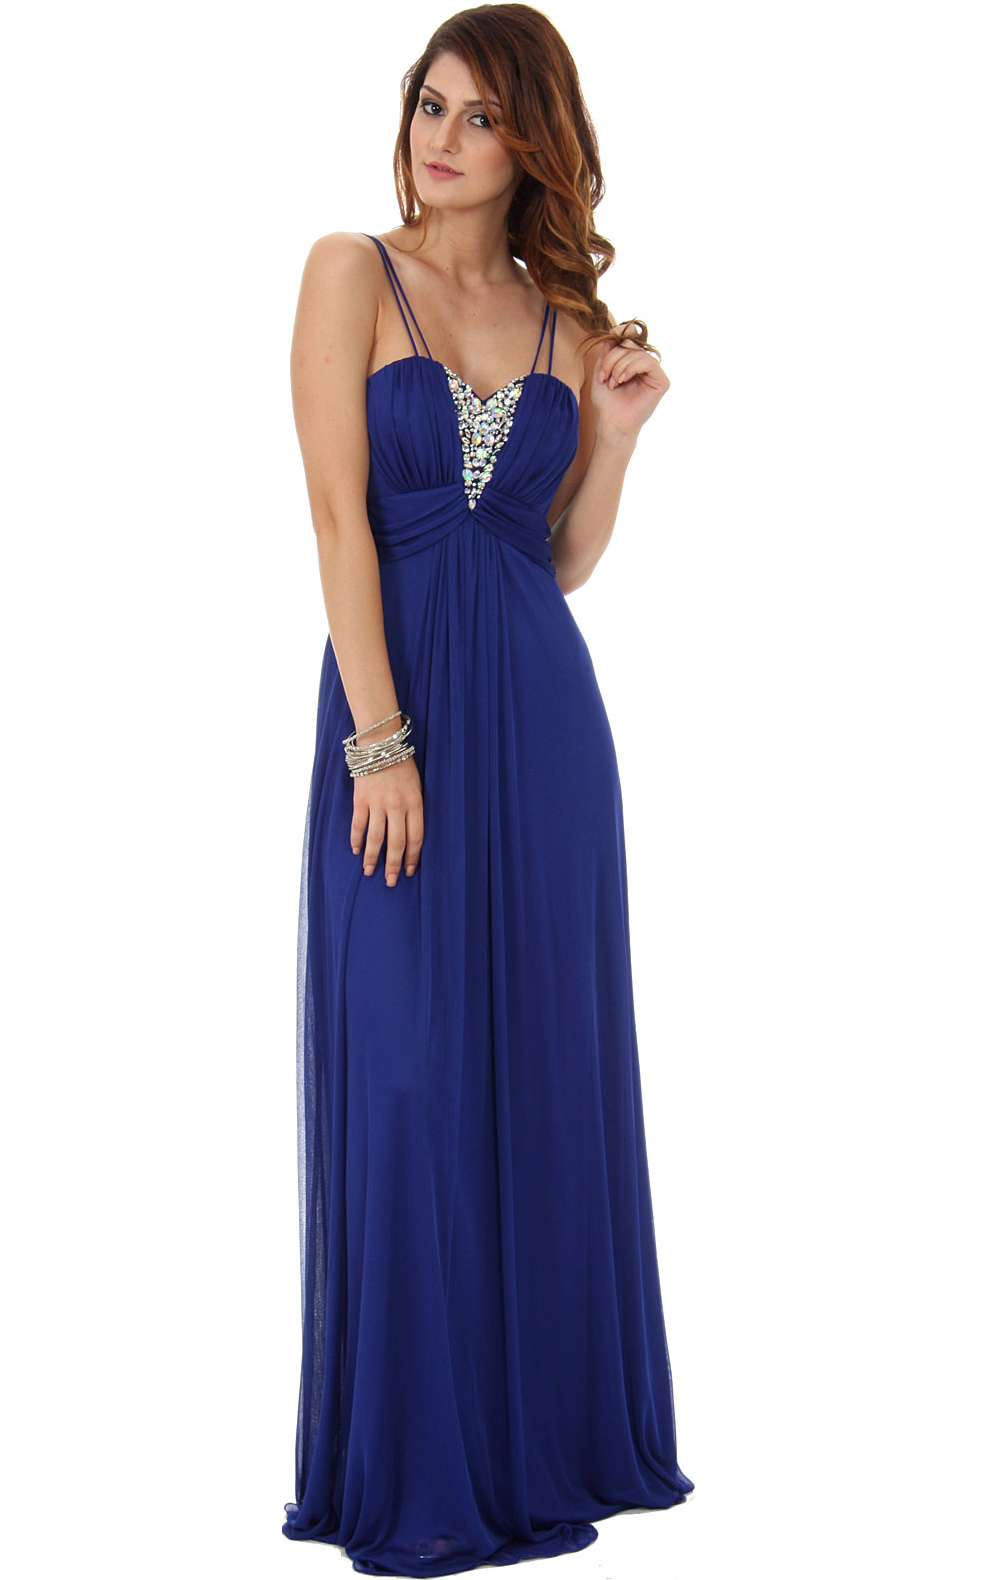 Elegant Spaghetti Straps Long A-line Chiffon Prom Dress with Crystal Embellishement